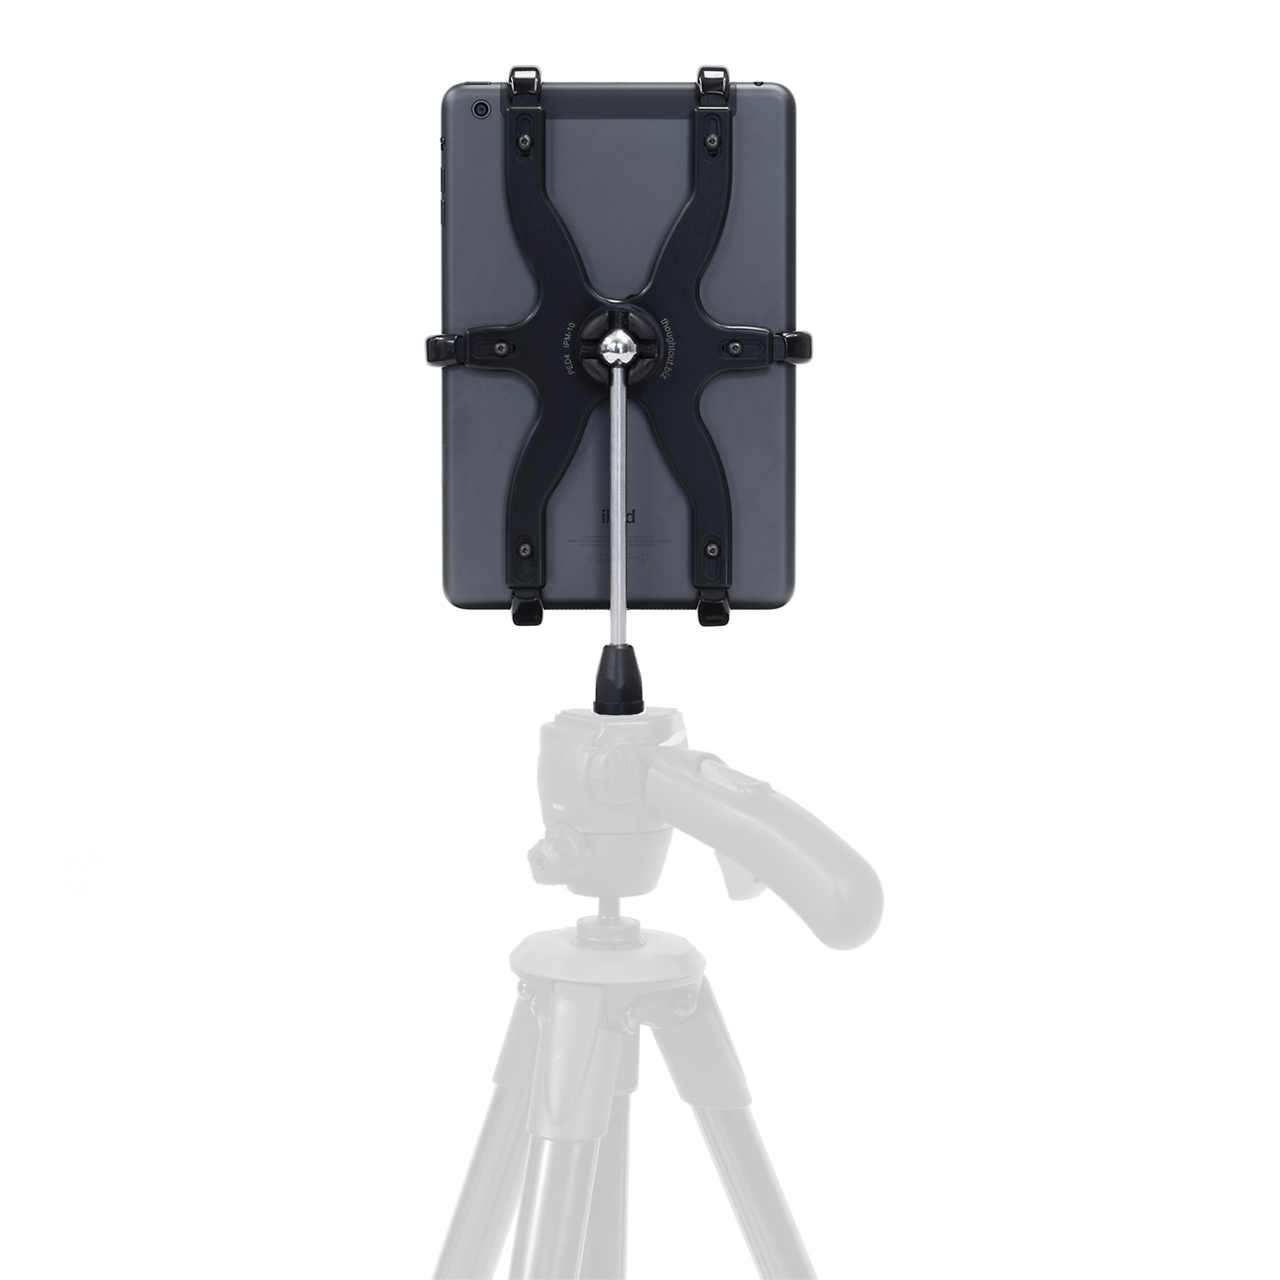 Converts to an iPad mini tripod mount